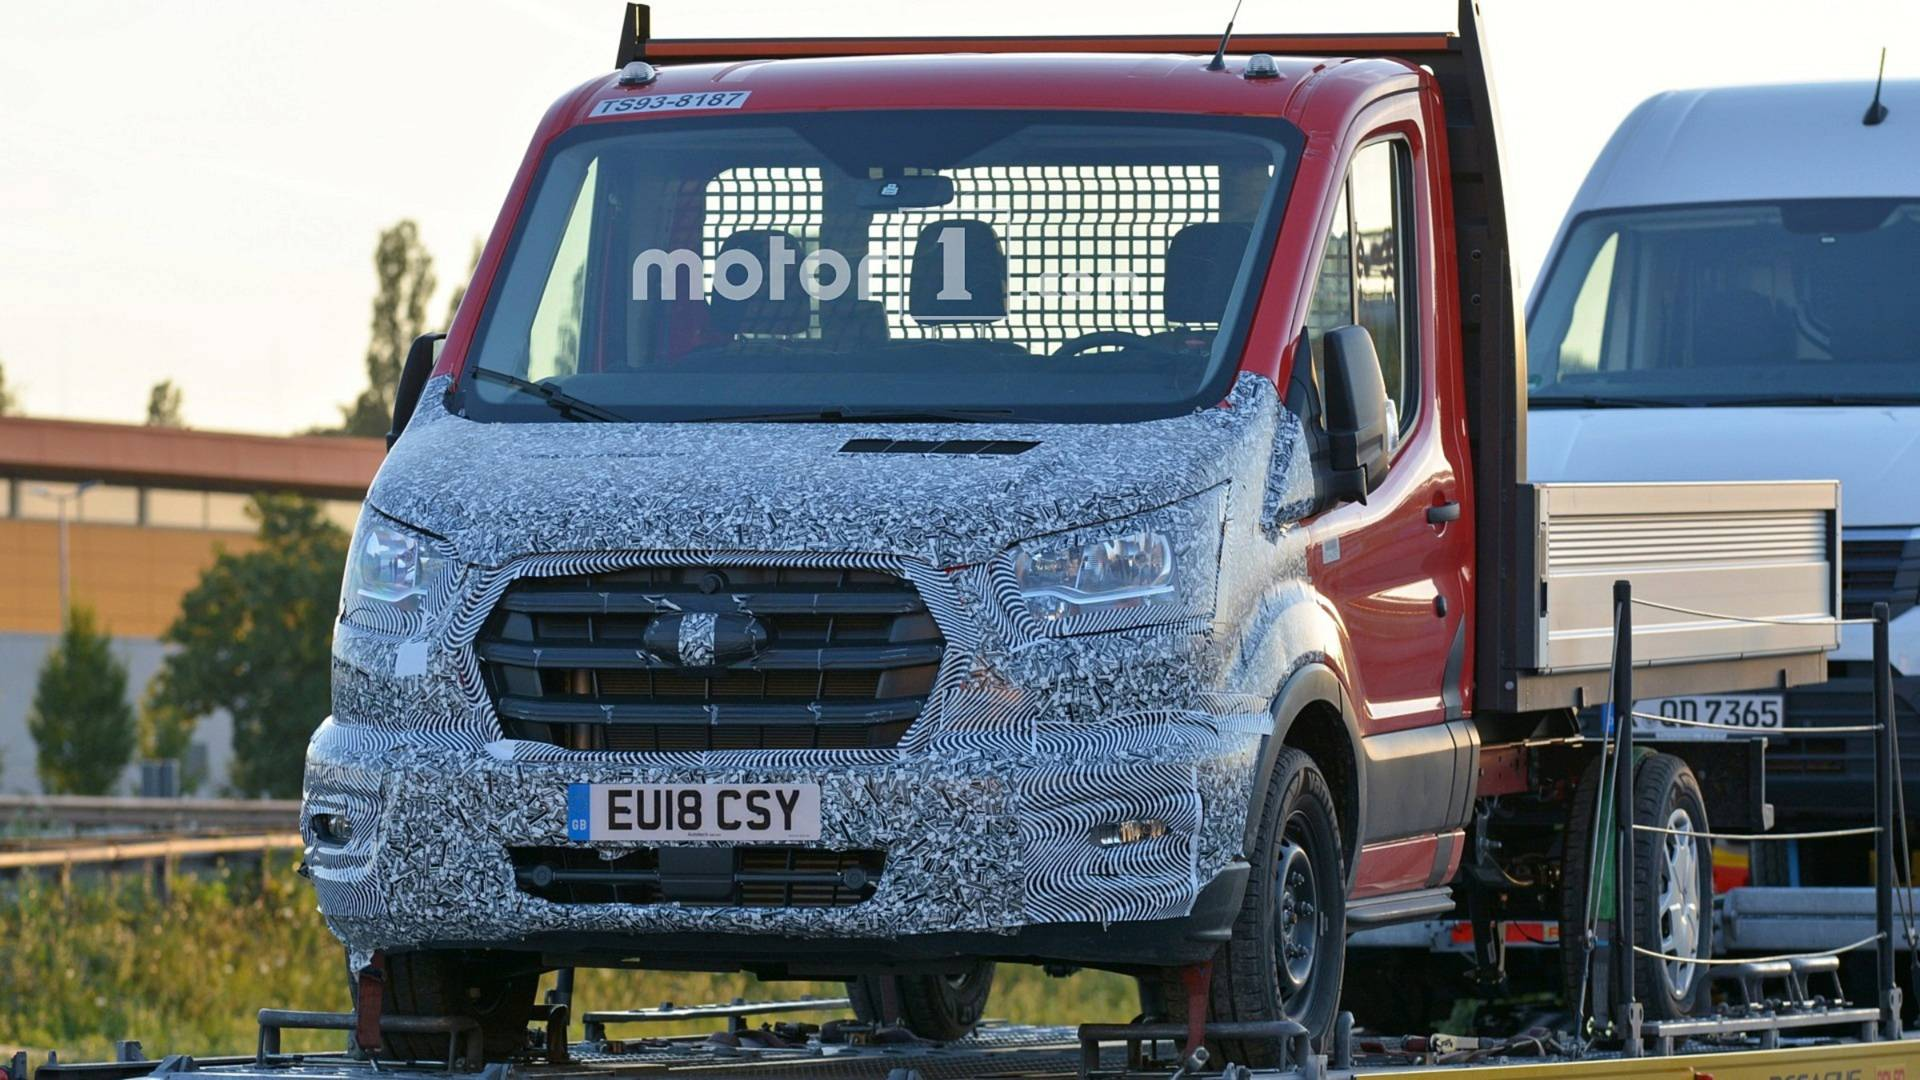 2017 - [Ford] Tourneo/Transit restylé - Page 3 Ford-transit-with-awd-spy-photo